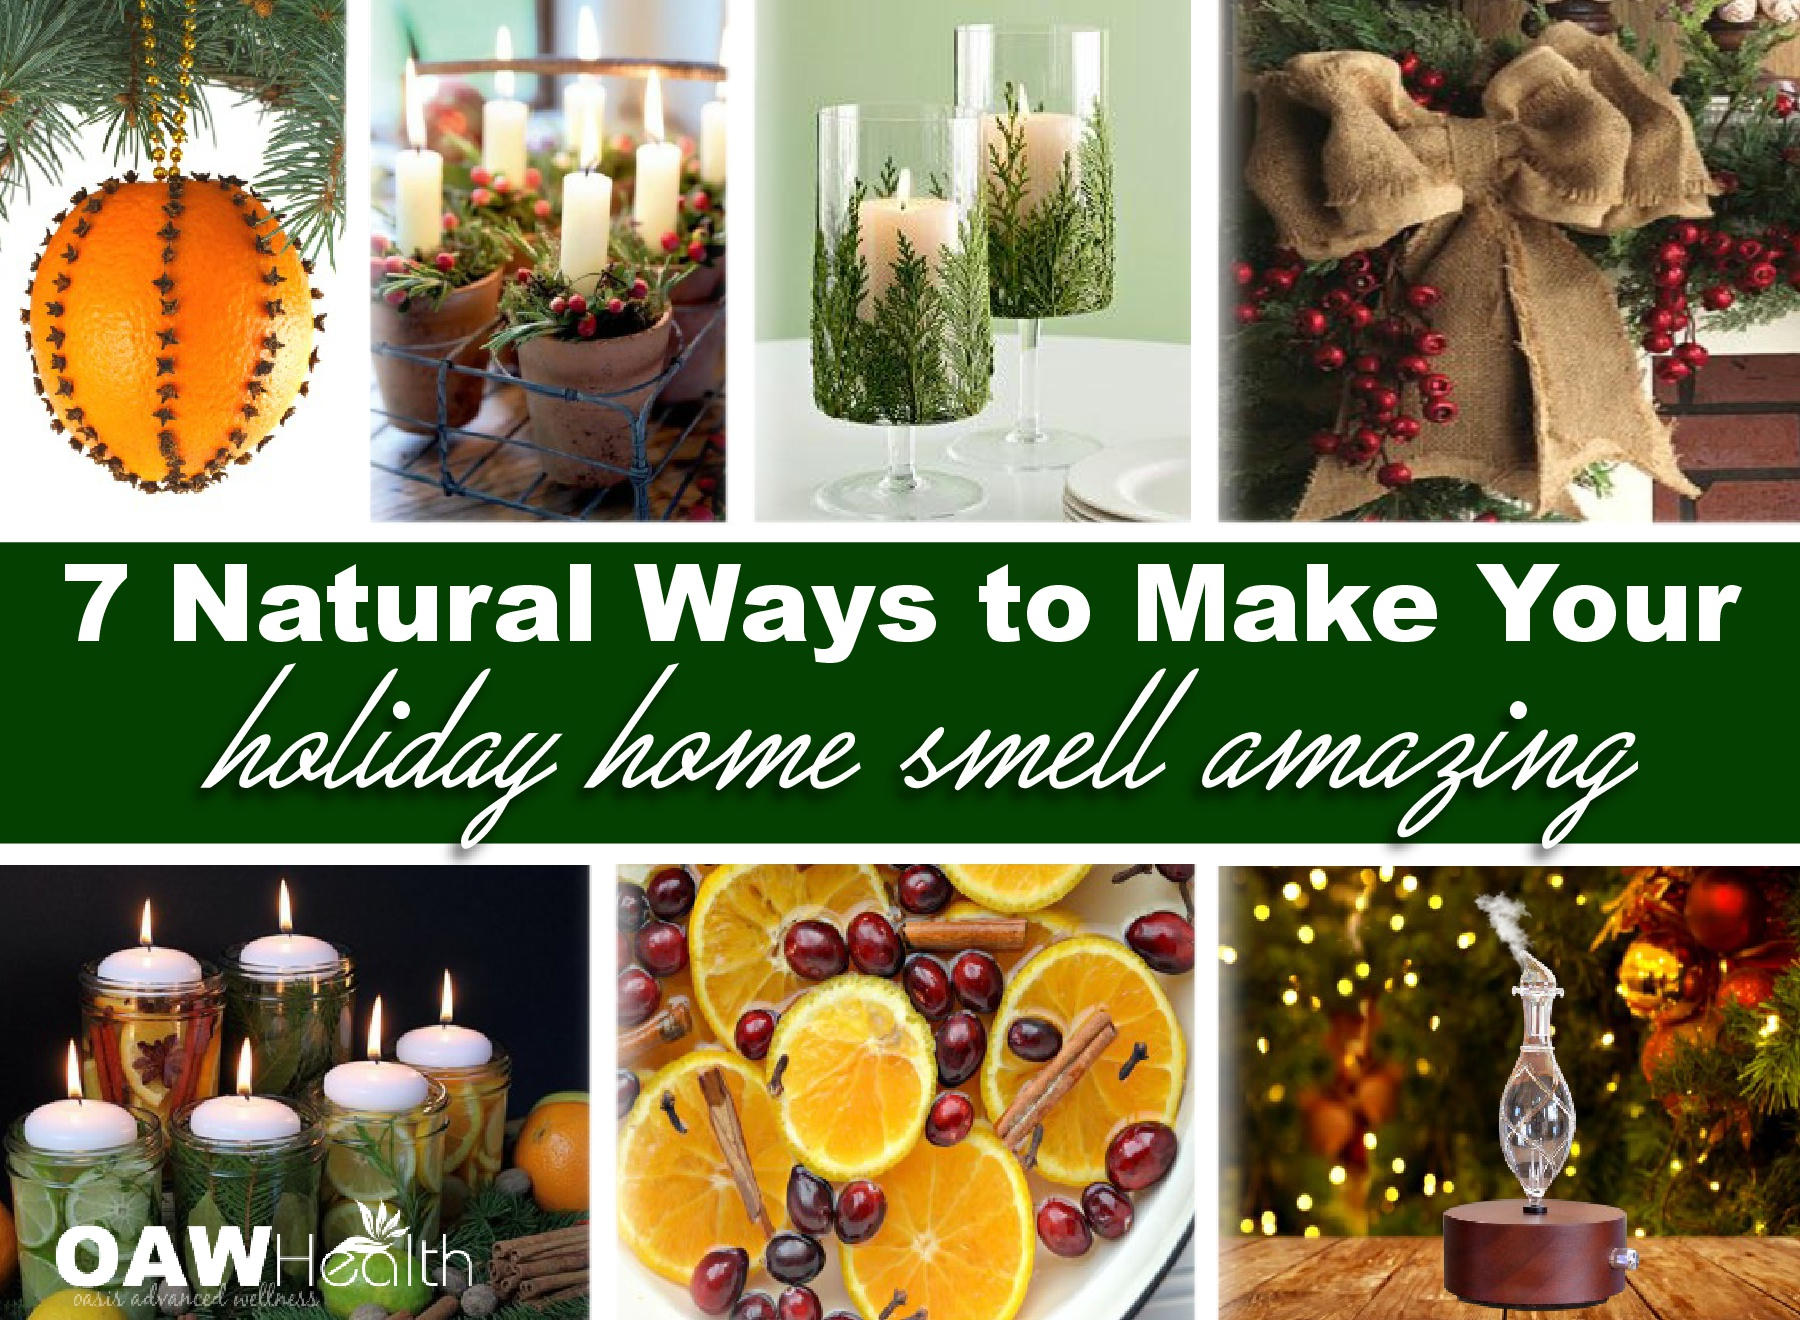 7 Natural Ways to Make Your Holiday Home Smell Amazing